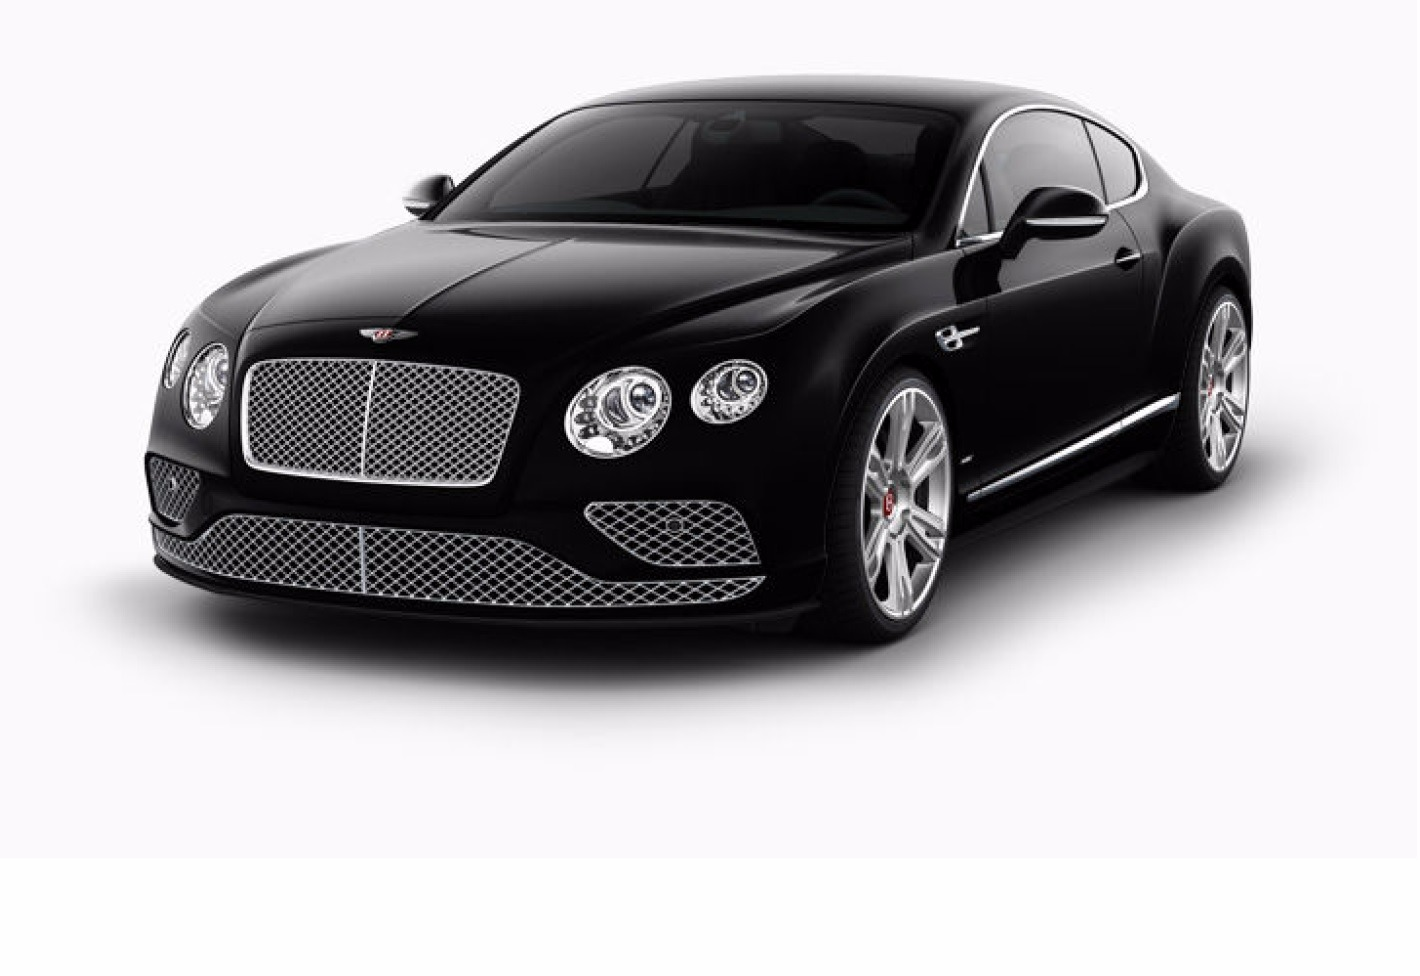 2017 bentley continental gt v8s stock 7ngt for sale near vienna va va bentley dealer for. Black Bedroom Furniture Sets. Home Design Ideas